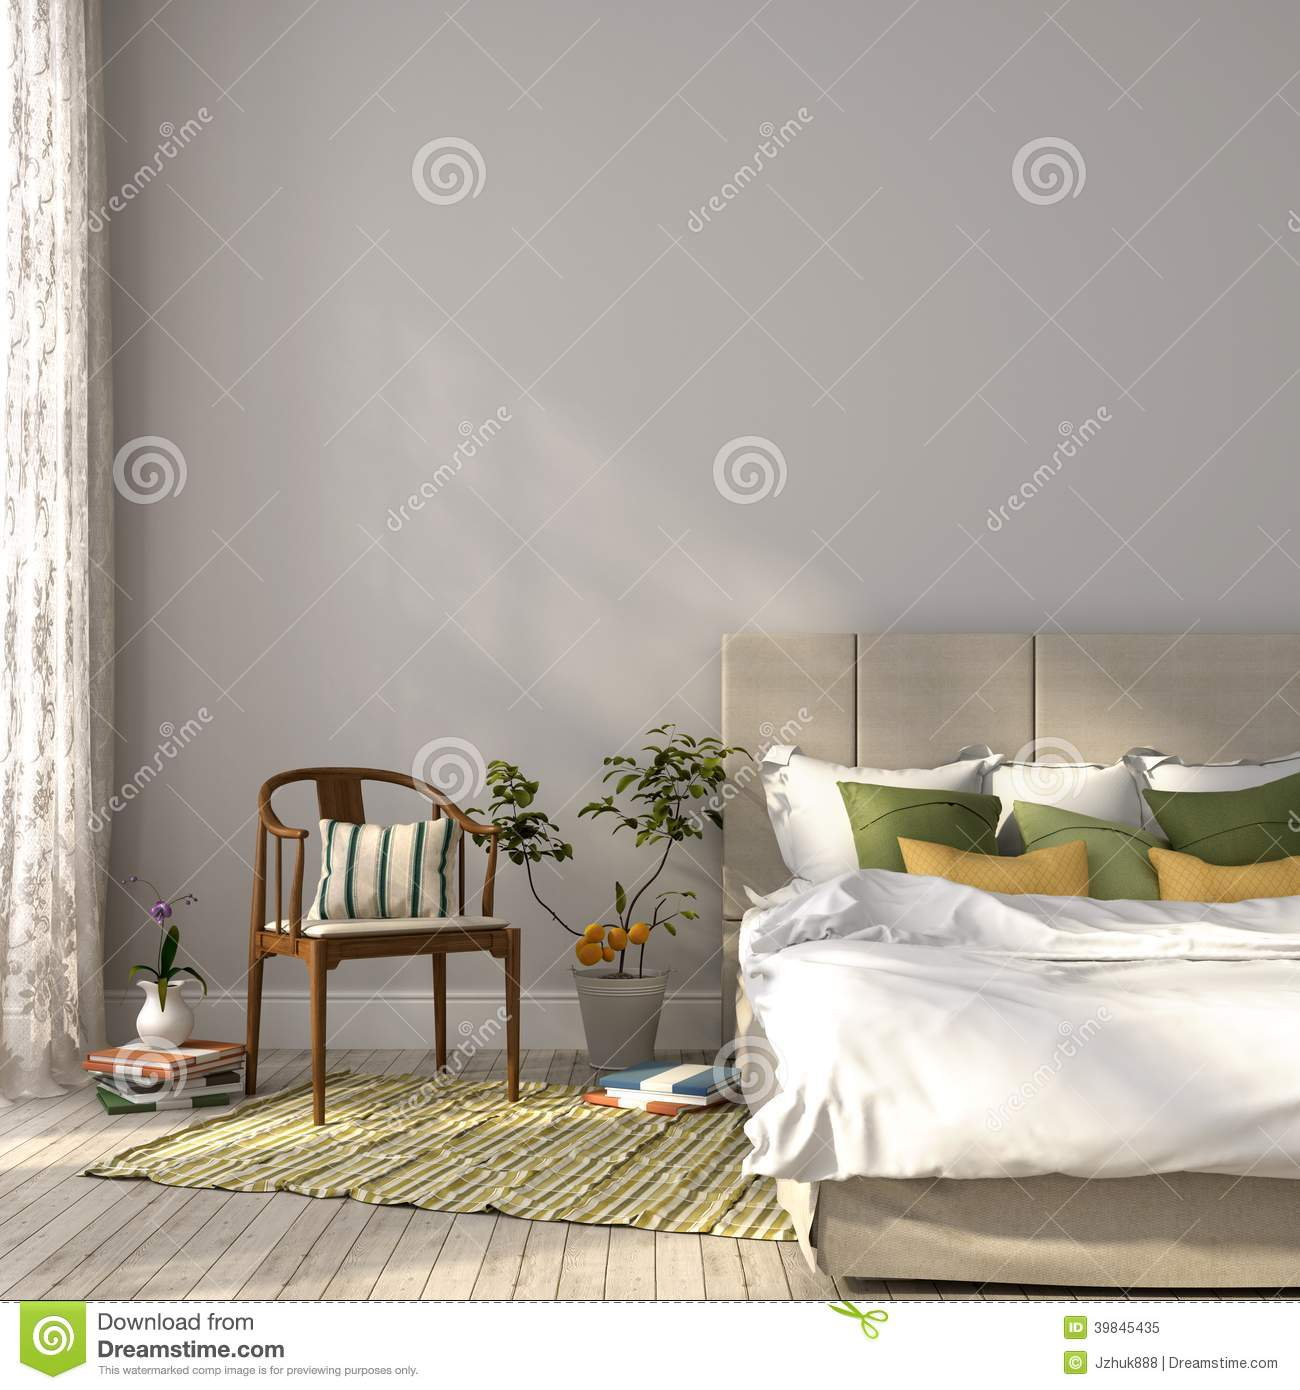 Beautiful Bedroom Furniture Green Bedroom Color Schemes Black And White Bedroom Suite Art Deco Bedroom Design: Beige Bed With Green Decor Stock Photo